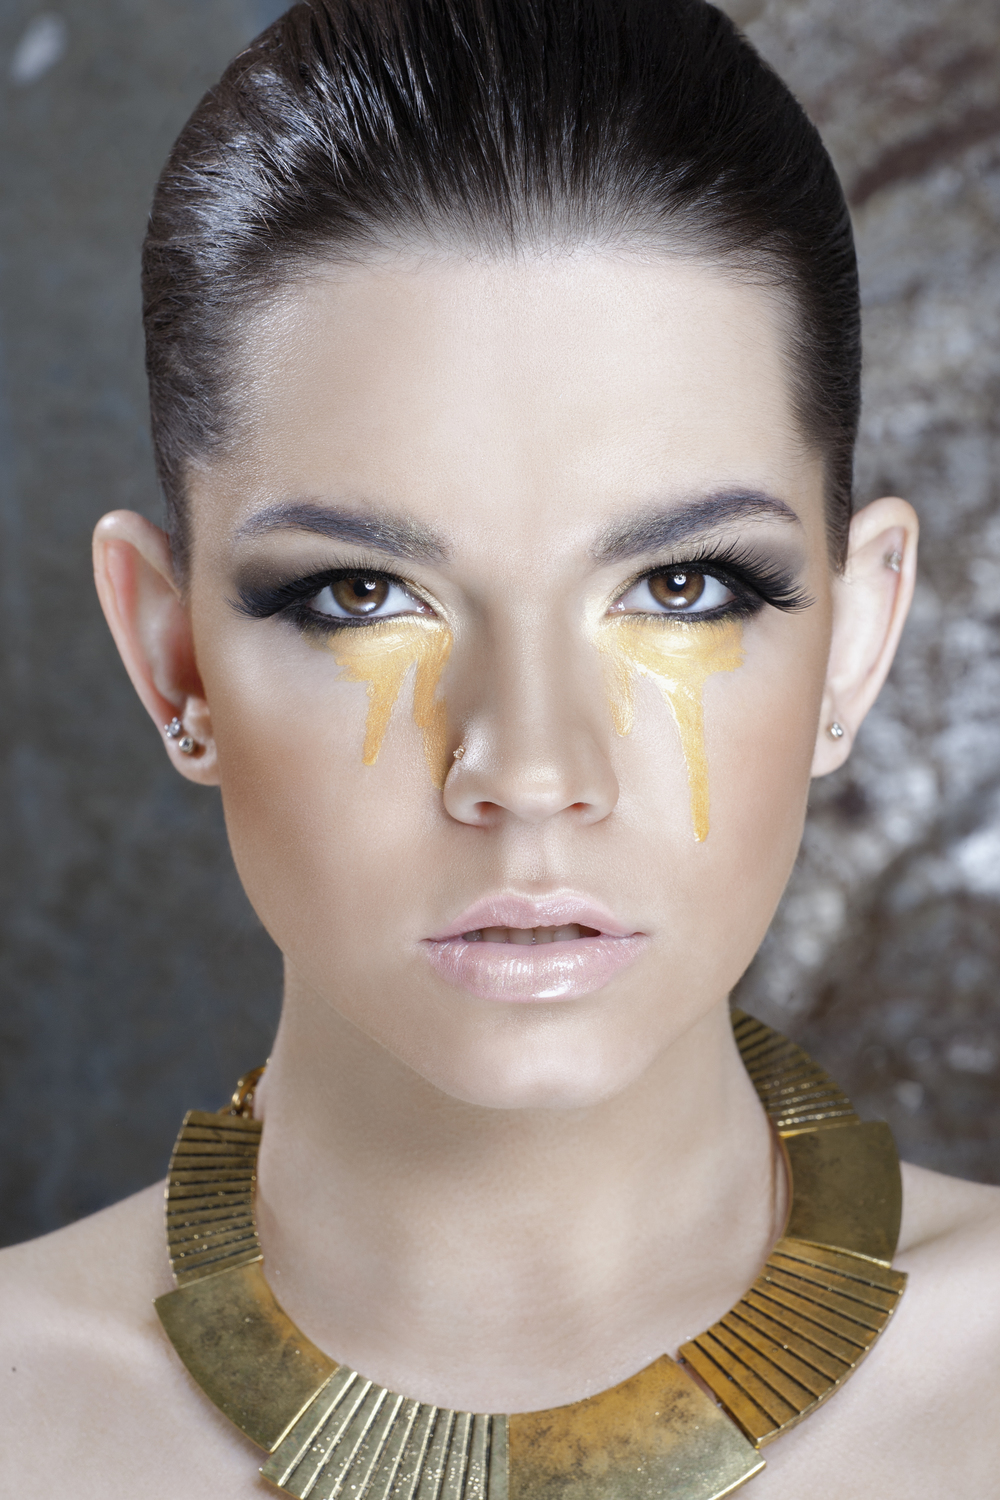 Beauty makeup project - Golden girl 2